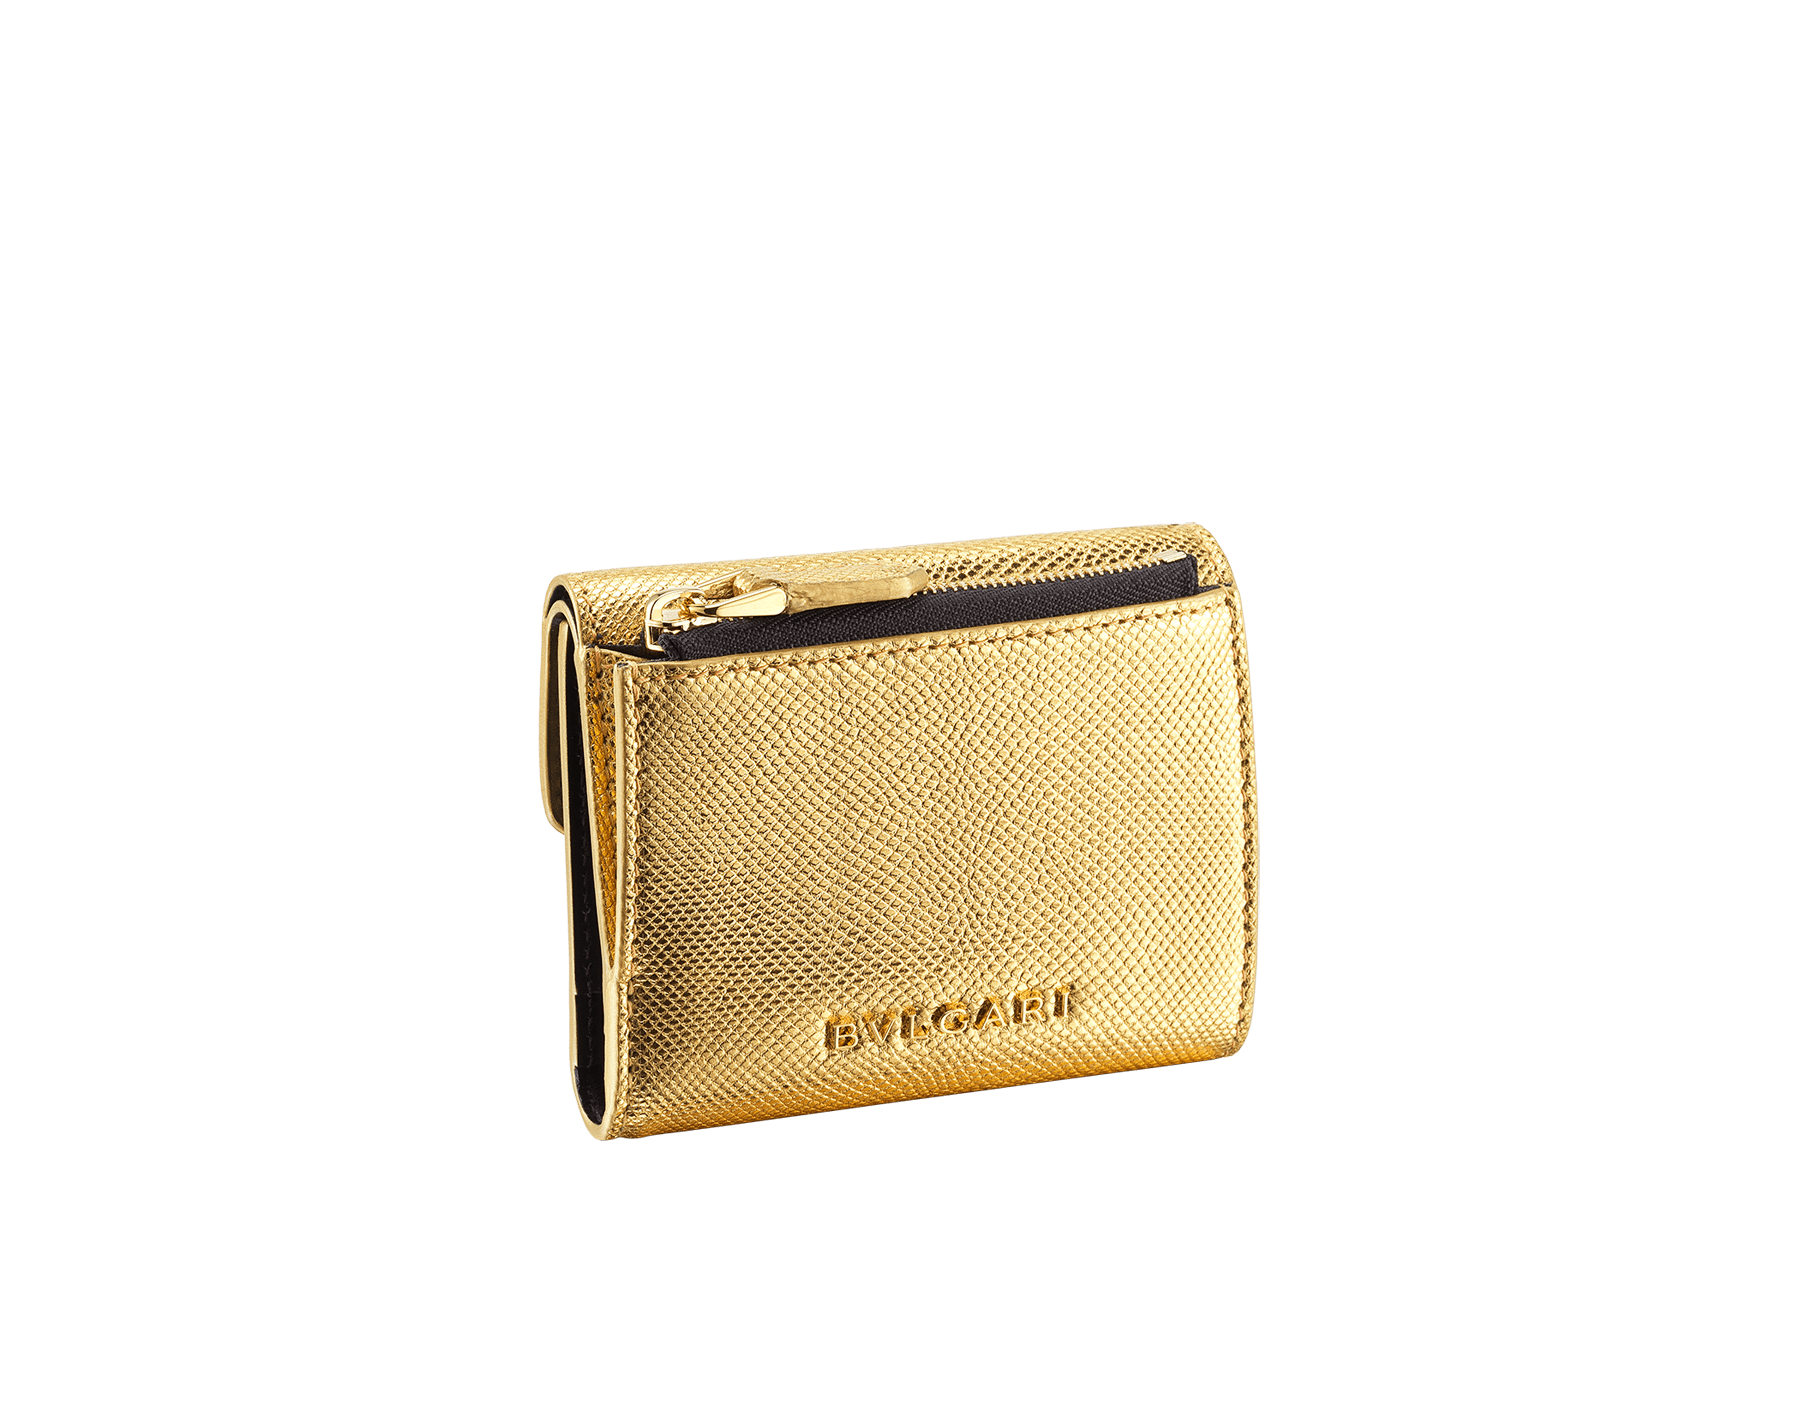 "Slender, compact ""Serpenti Forever"" wallet in ""Molten"" gold karung skin and black calfskin, offering a touch of radiance for the Winter Holidays. New Serpenti head closure in gold-plated brass, complete with ruby-red enamel eyes. SEA-SLIMCOMPACT-MoltK image 3"